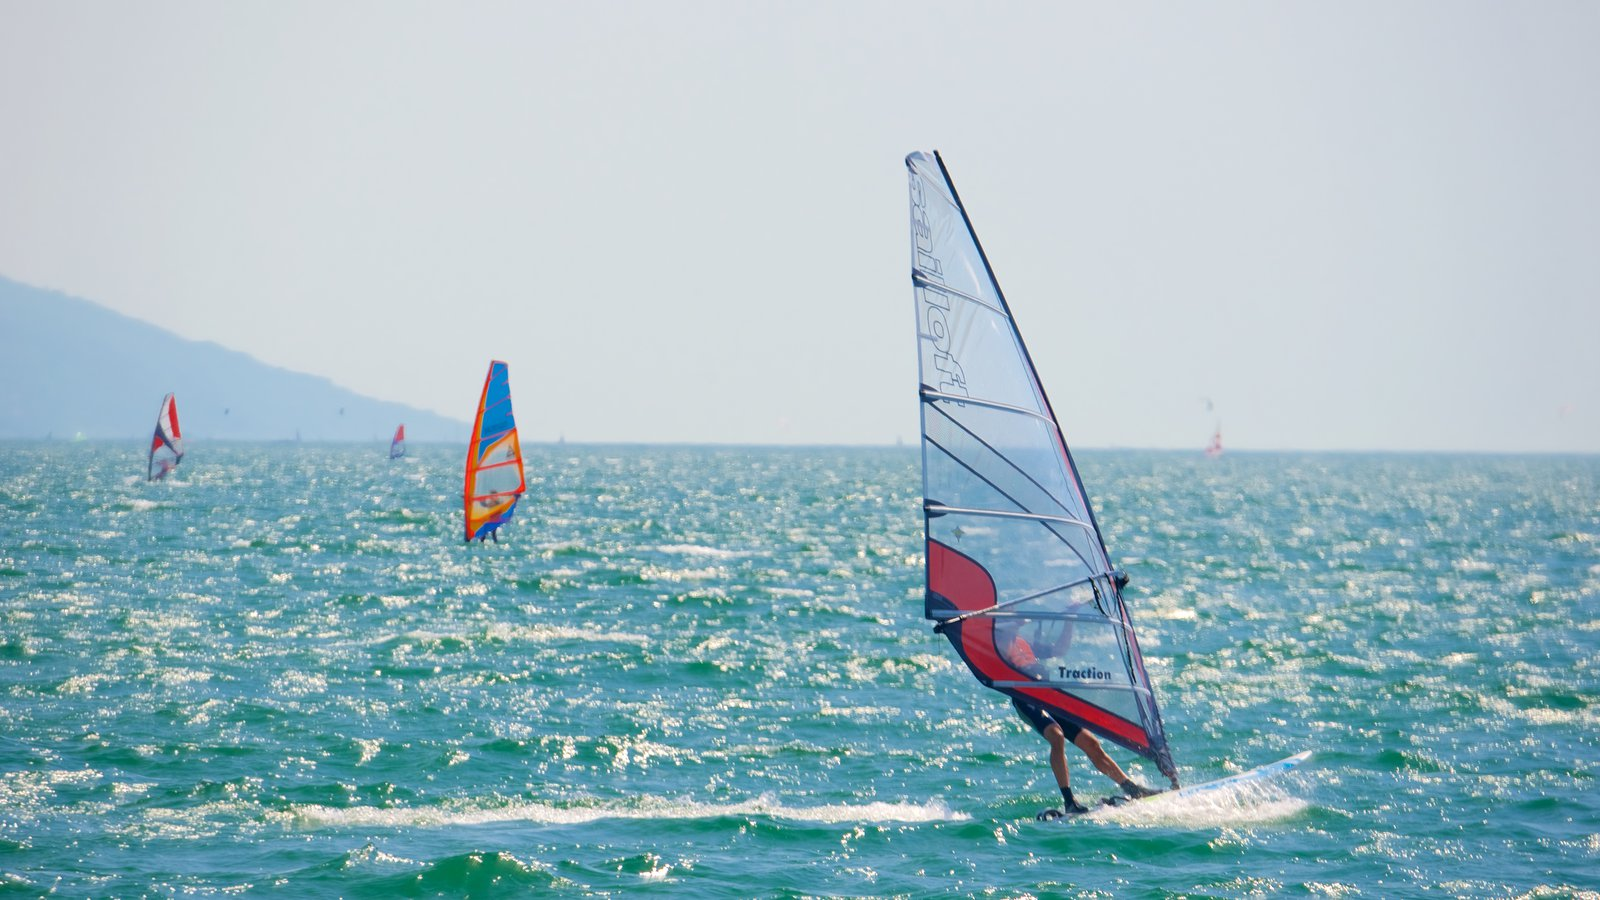 Nago-Torbole showing general coastal views and windsurfing